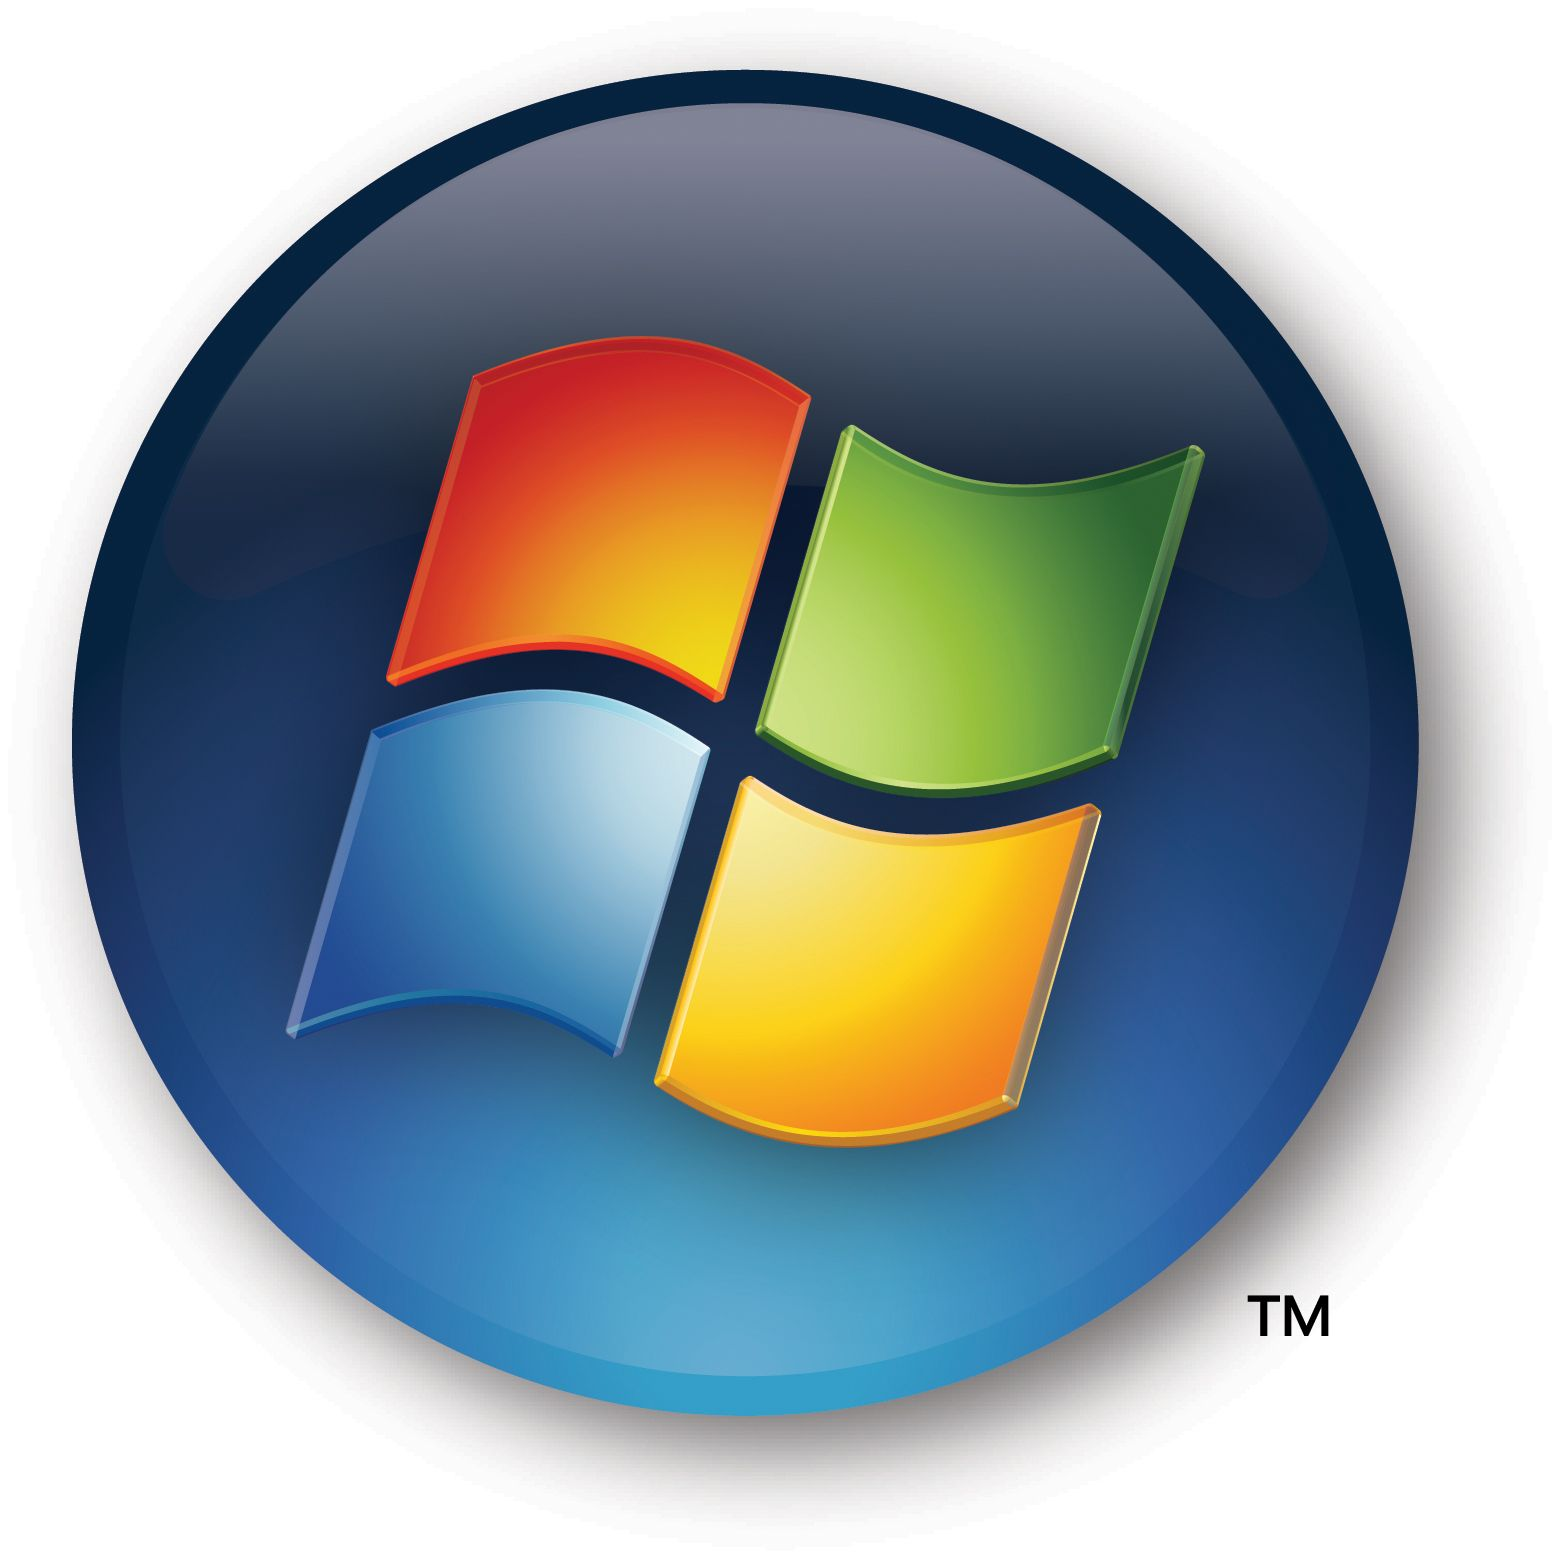 Windows Vista Logo - Image - Windows Vista 2006.jpg | Logo Timeline Wiki | FANDOM powered ...